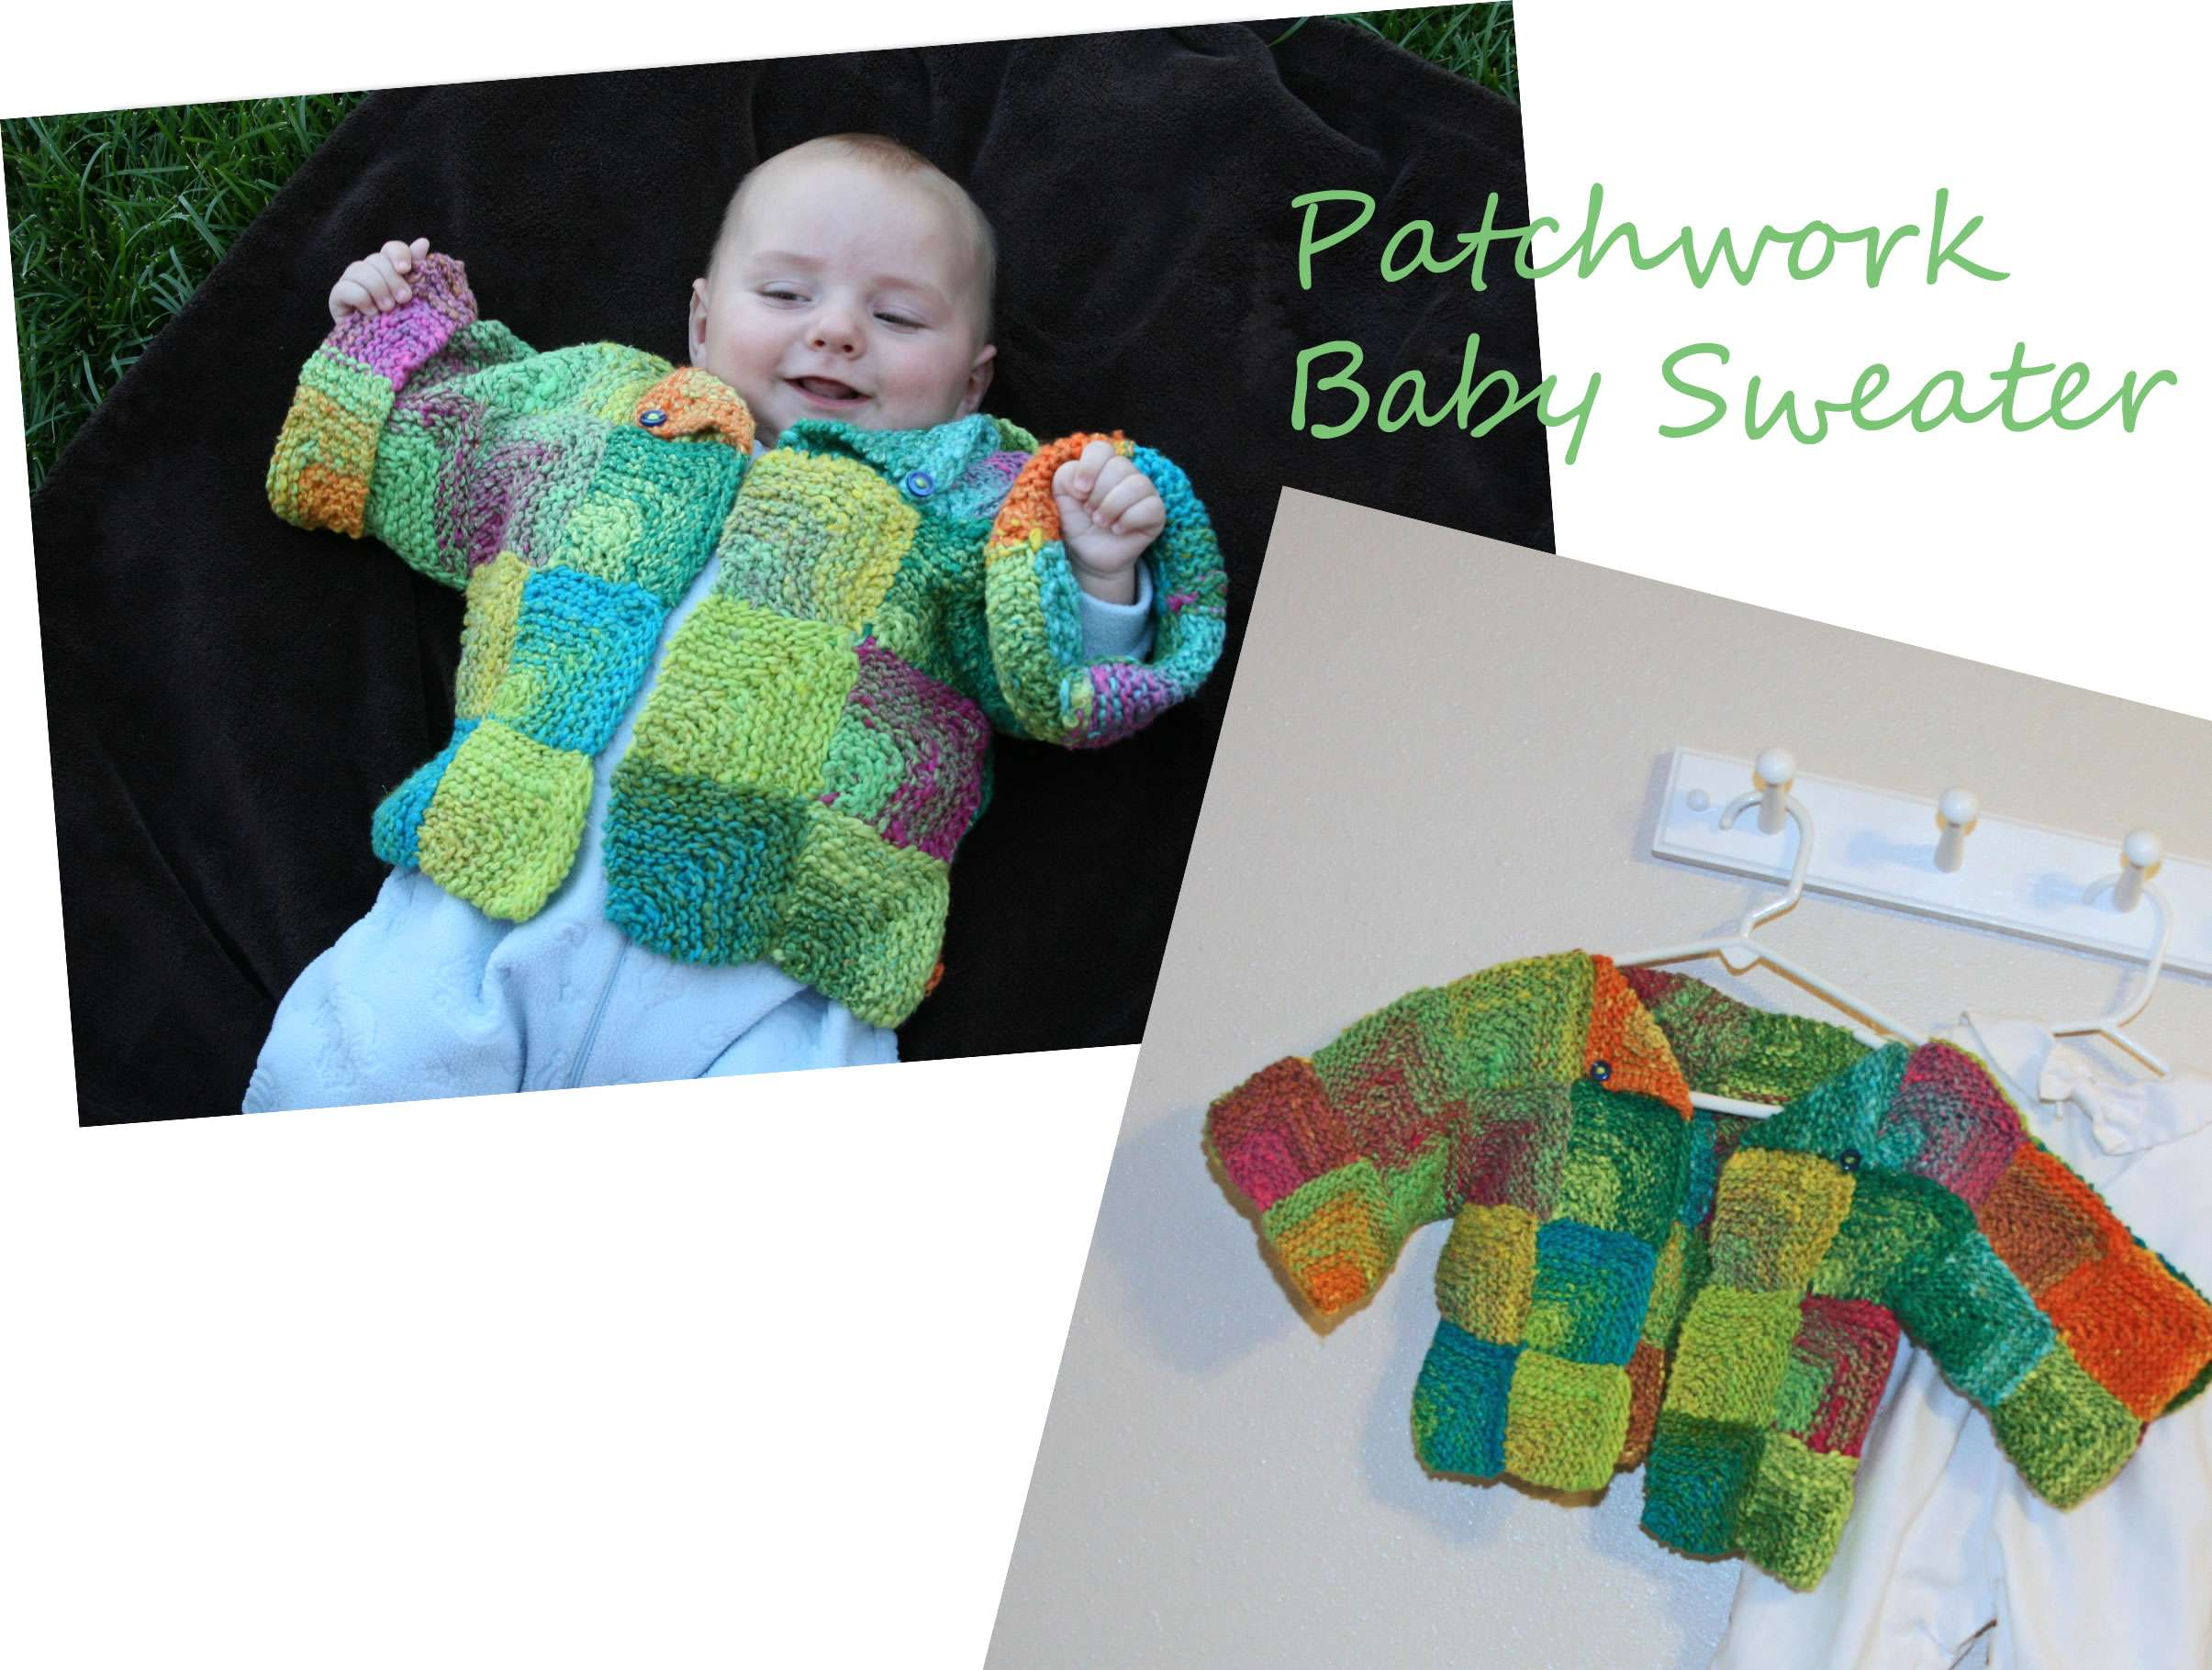 Patchwork Baby Sweater